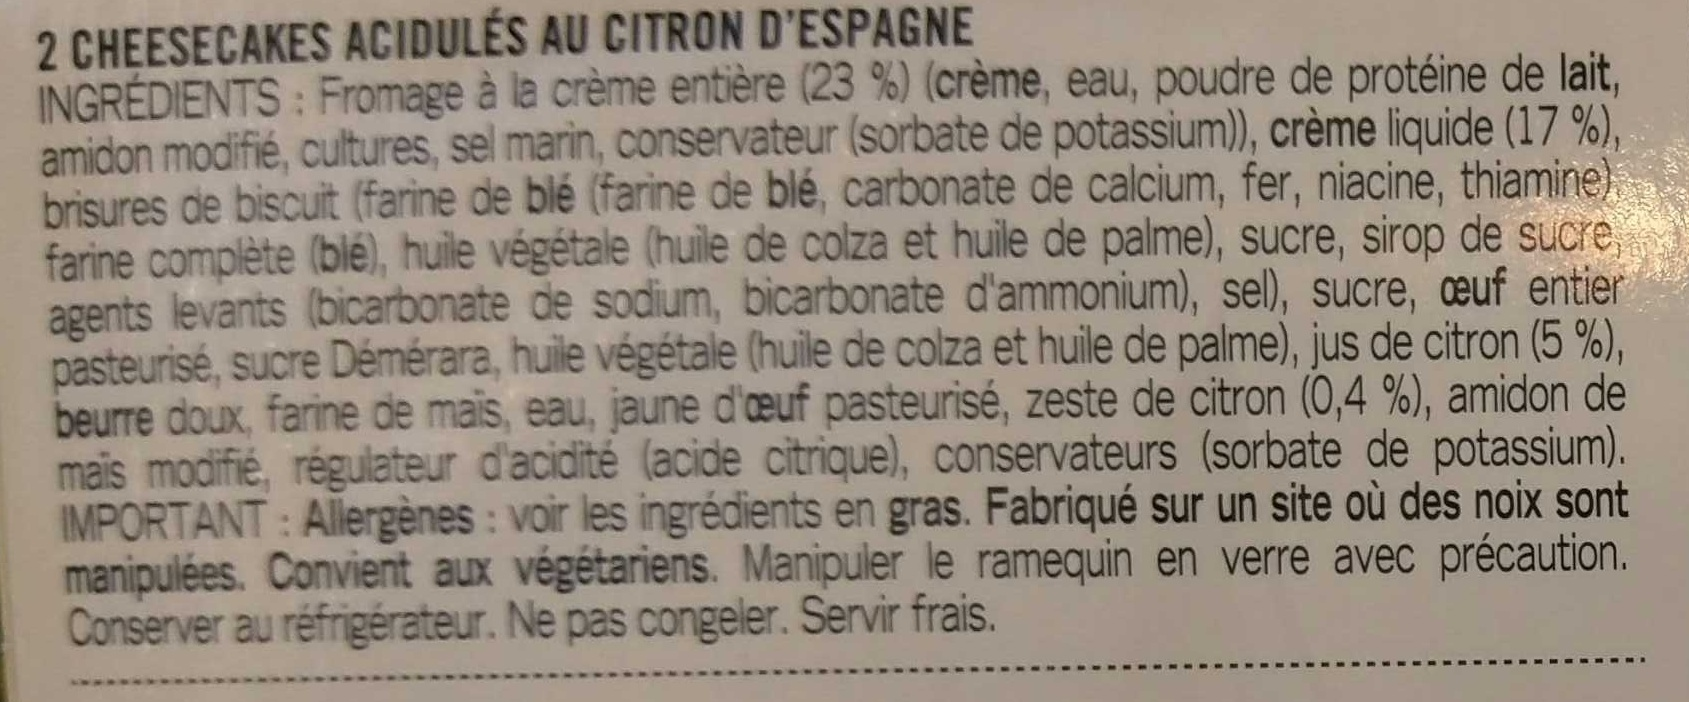 Le cheesecake citron - Ingredients - fr